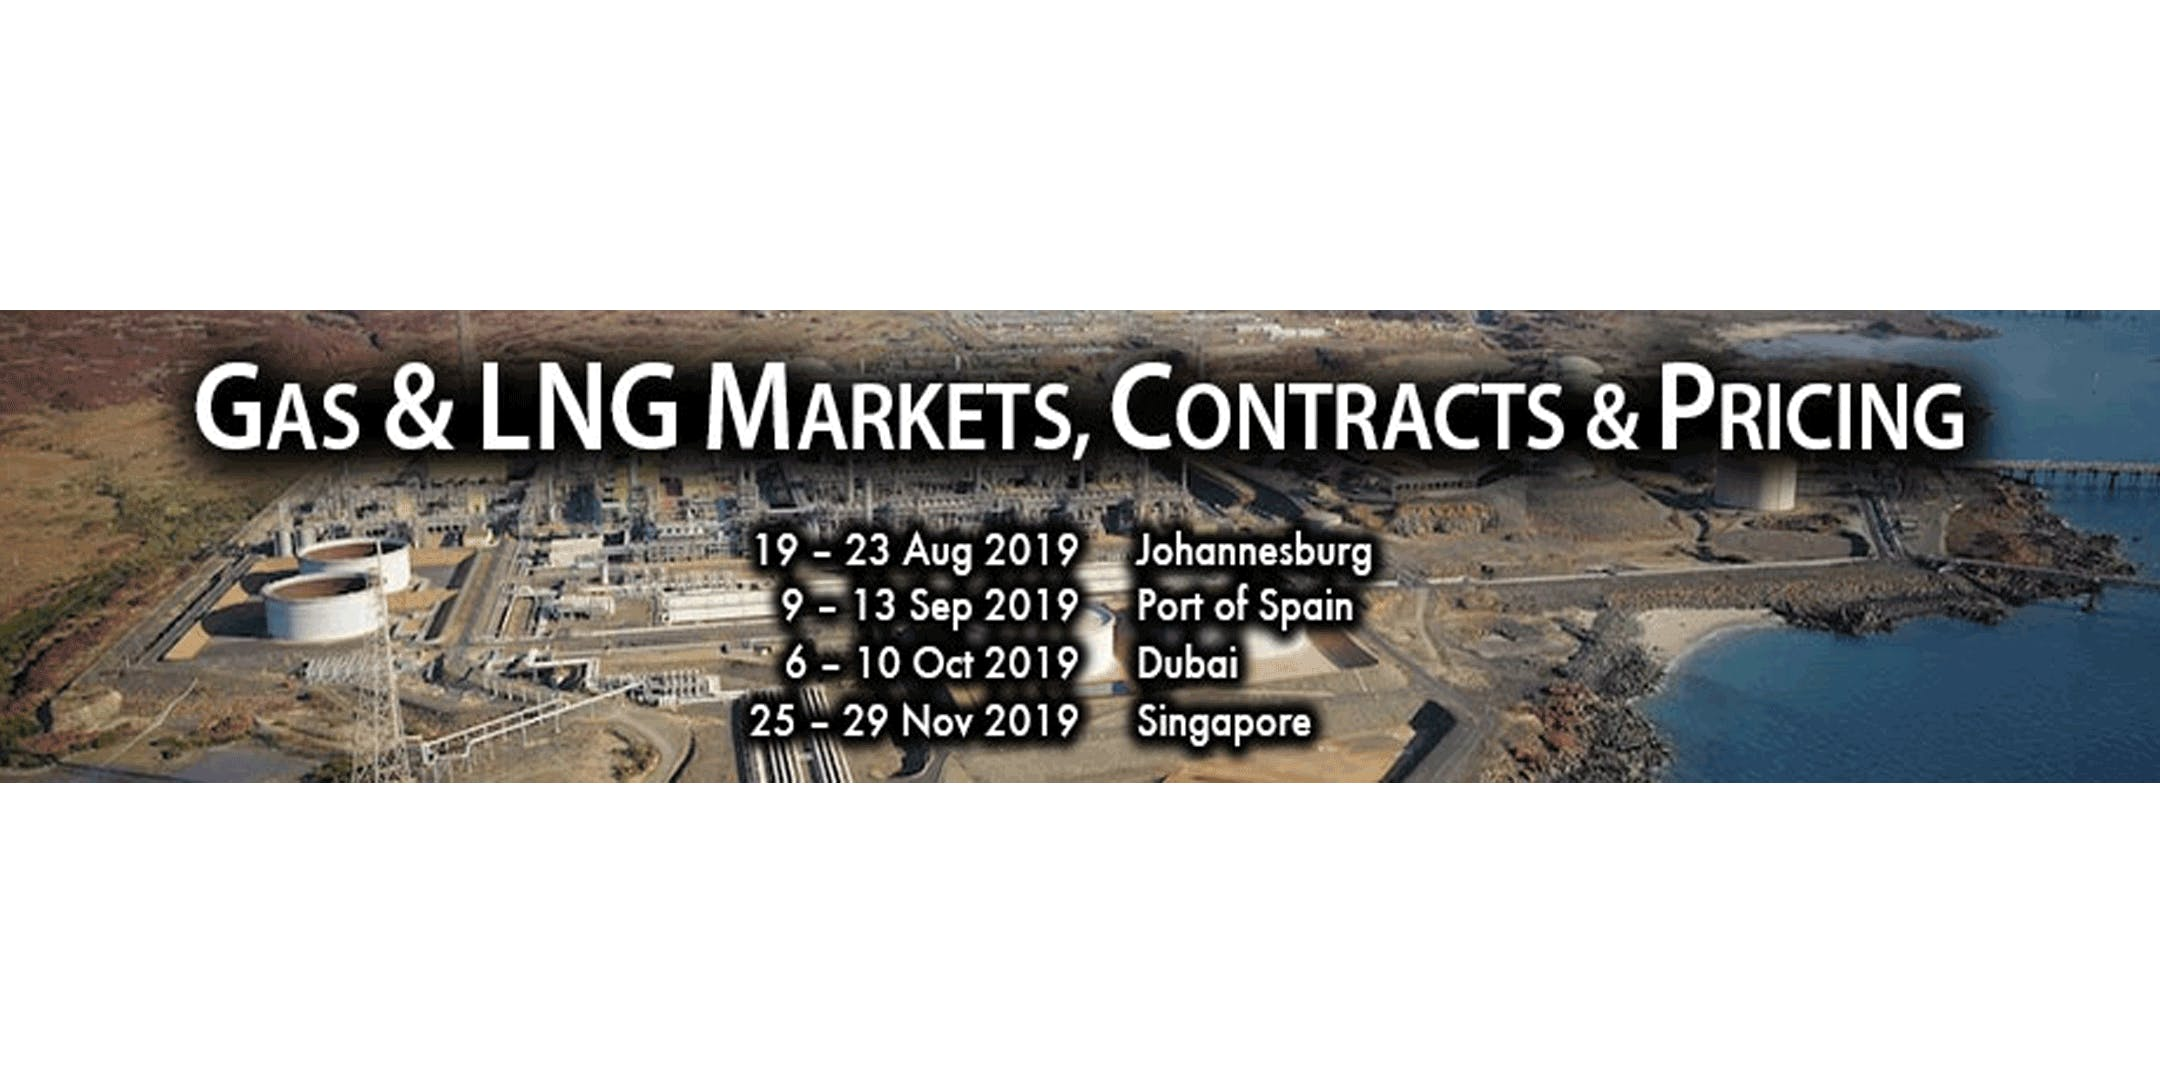 Gas & LNG Markets, Contracts & Pricing - Sing